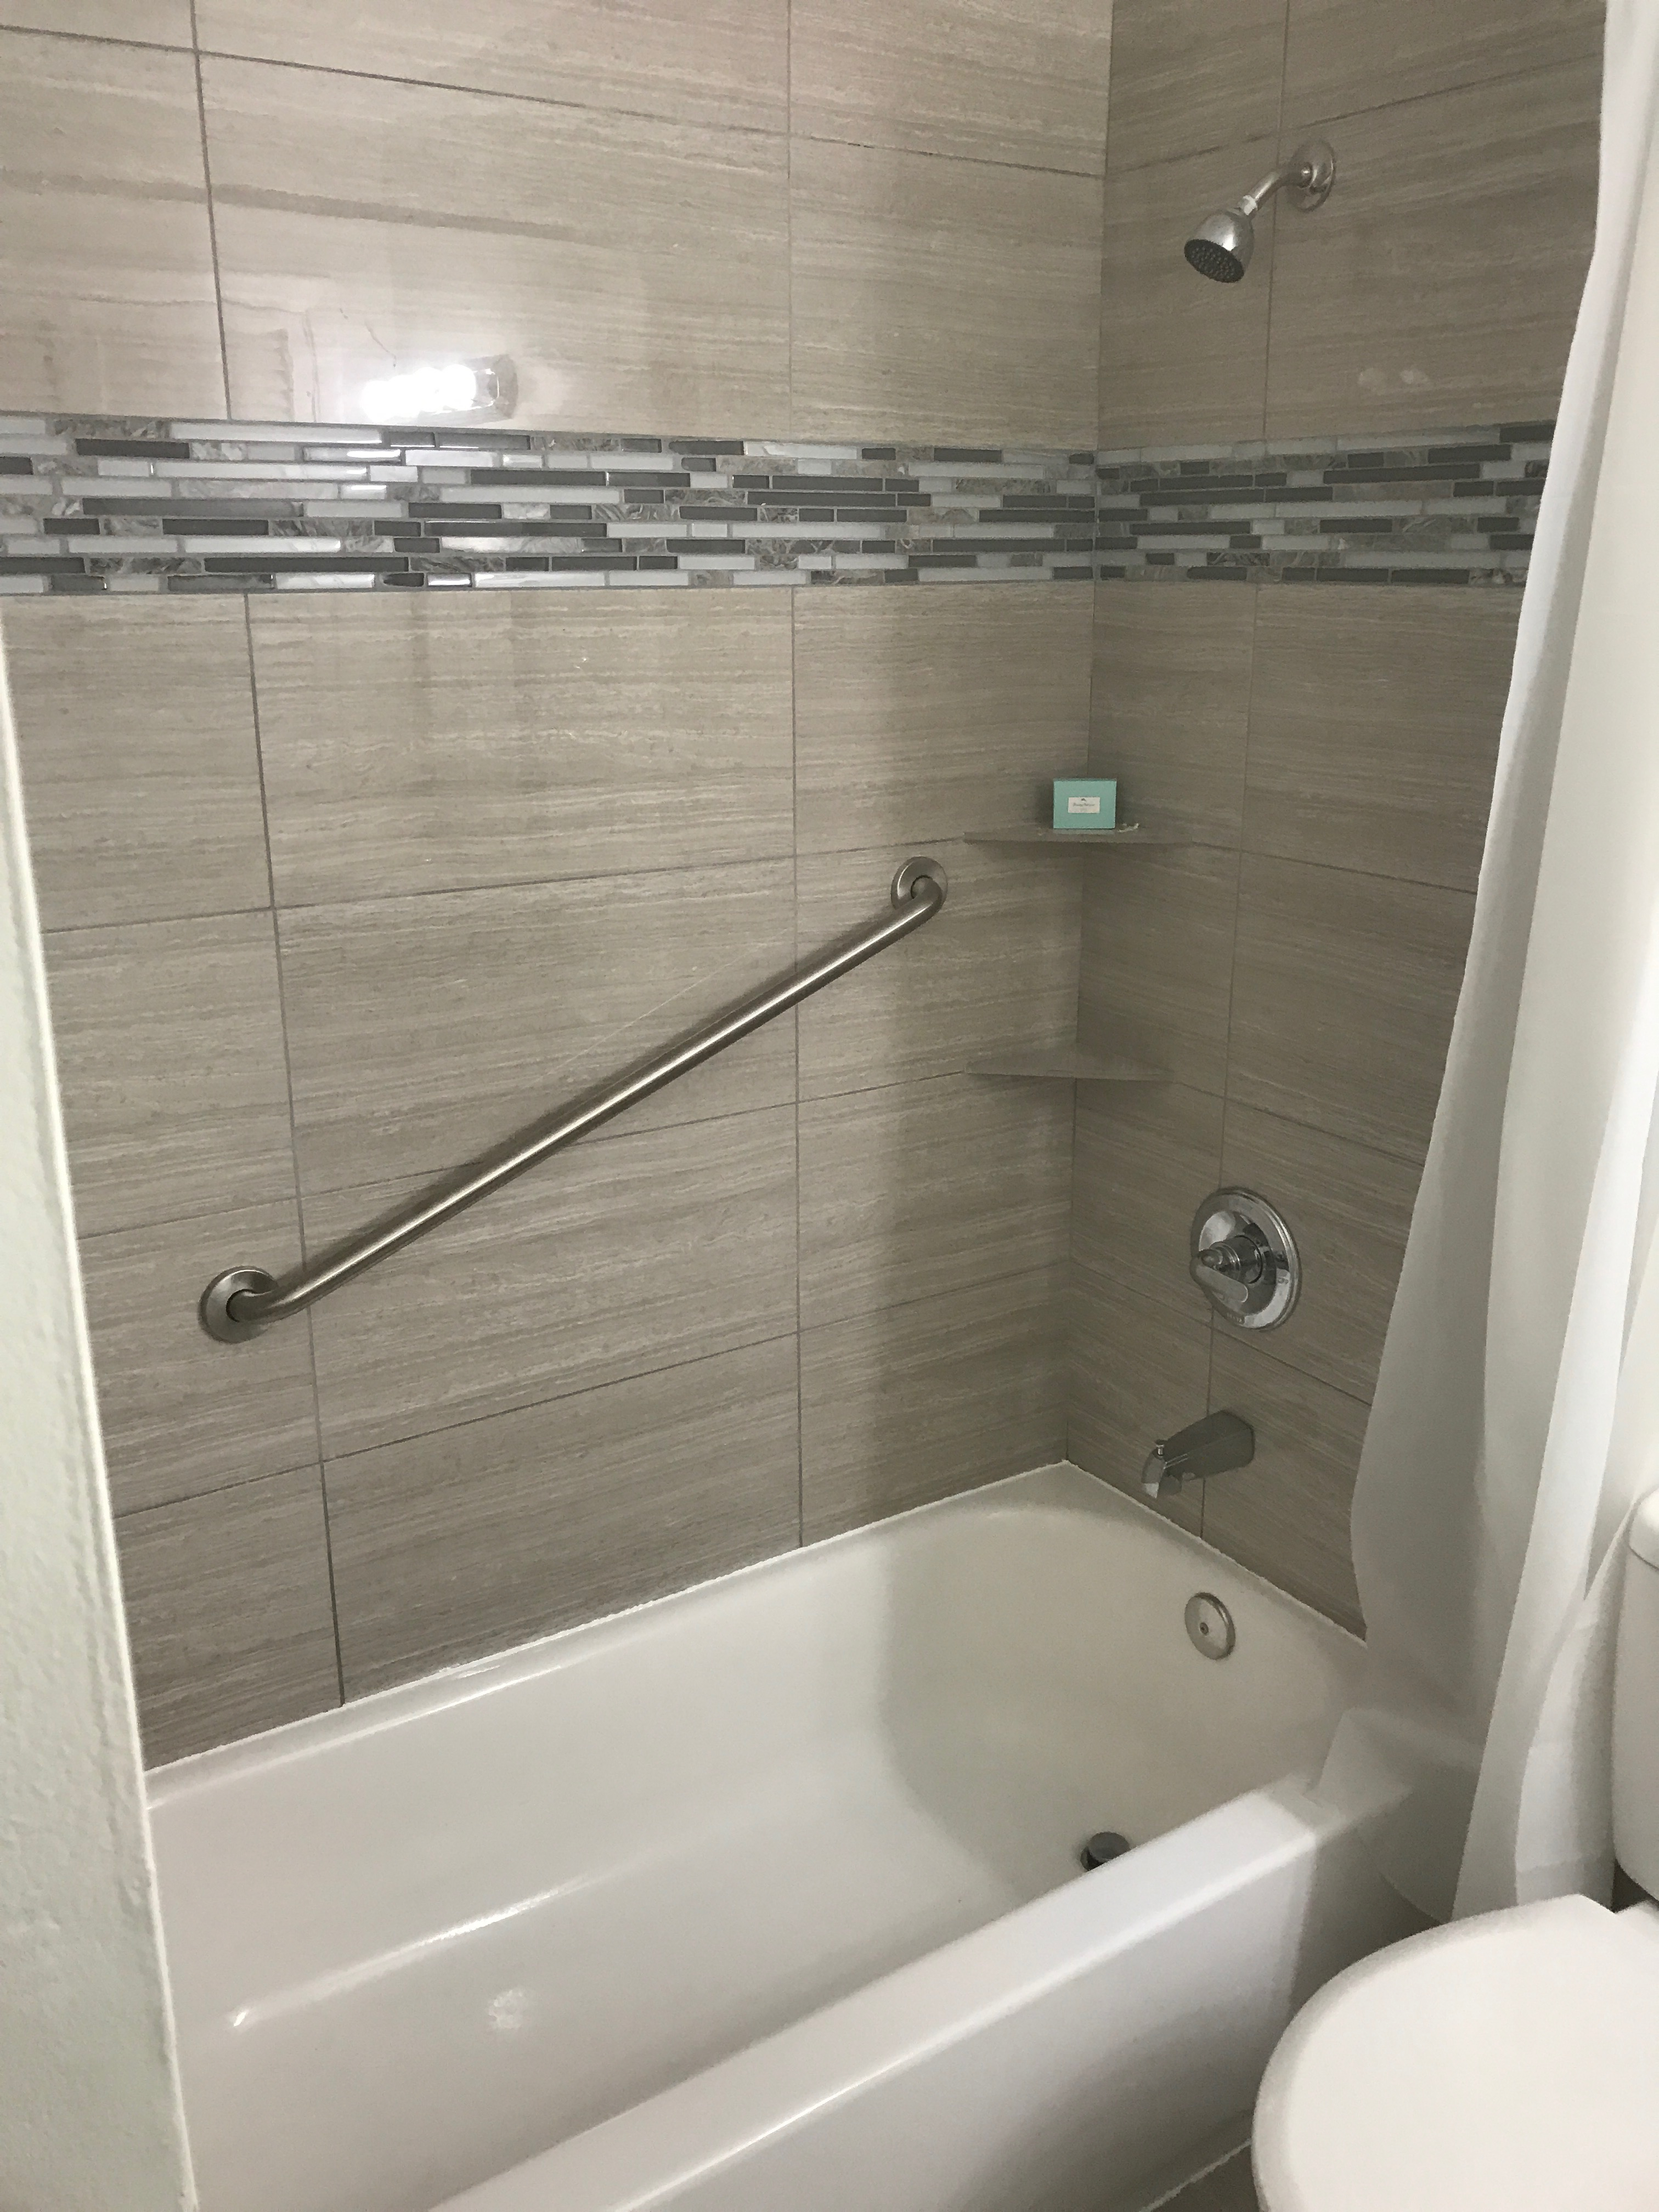 Shower handle installation